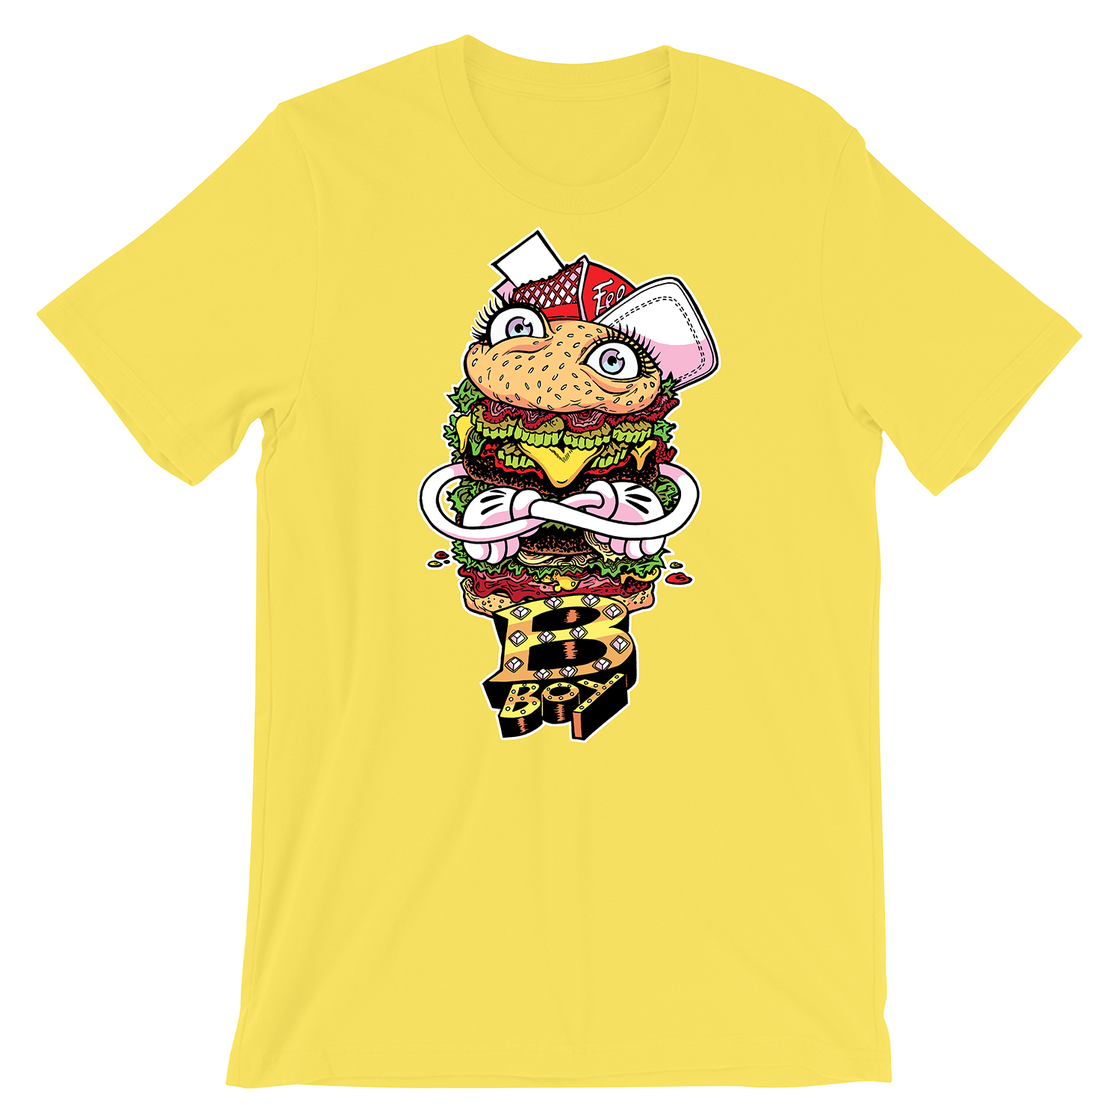 Image of Burger Boy Mustard T-Shirt